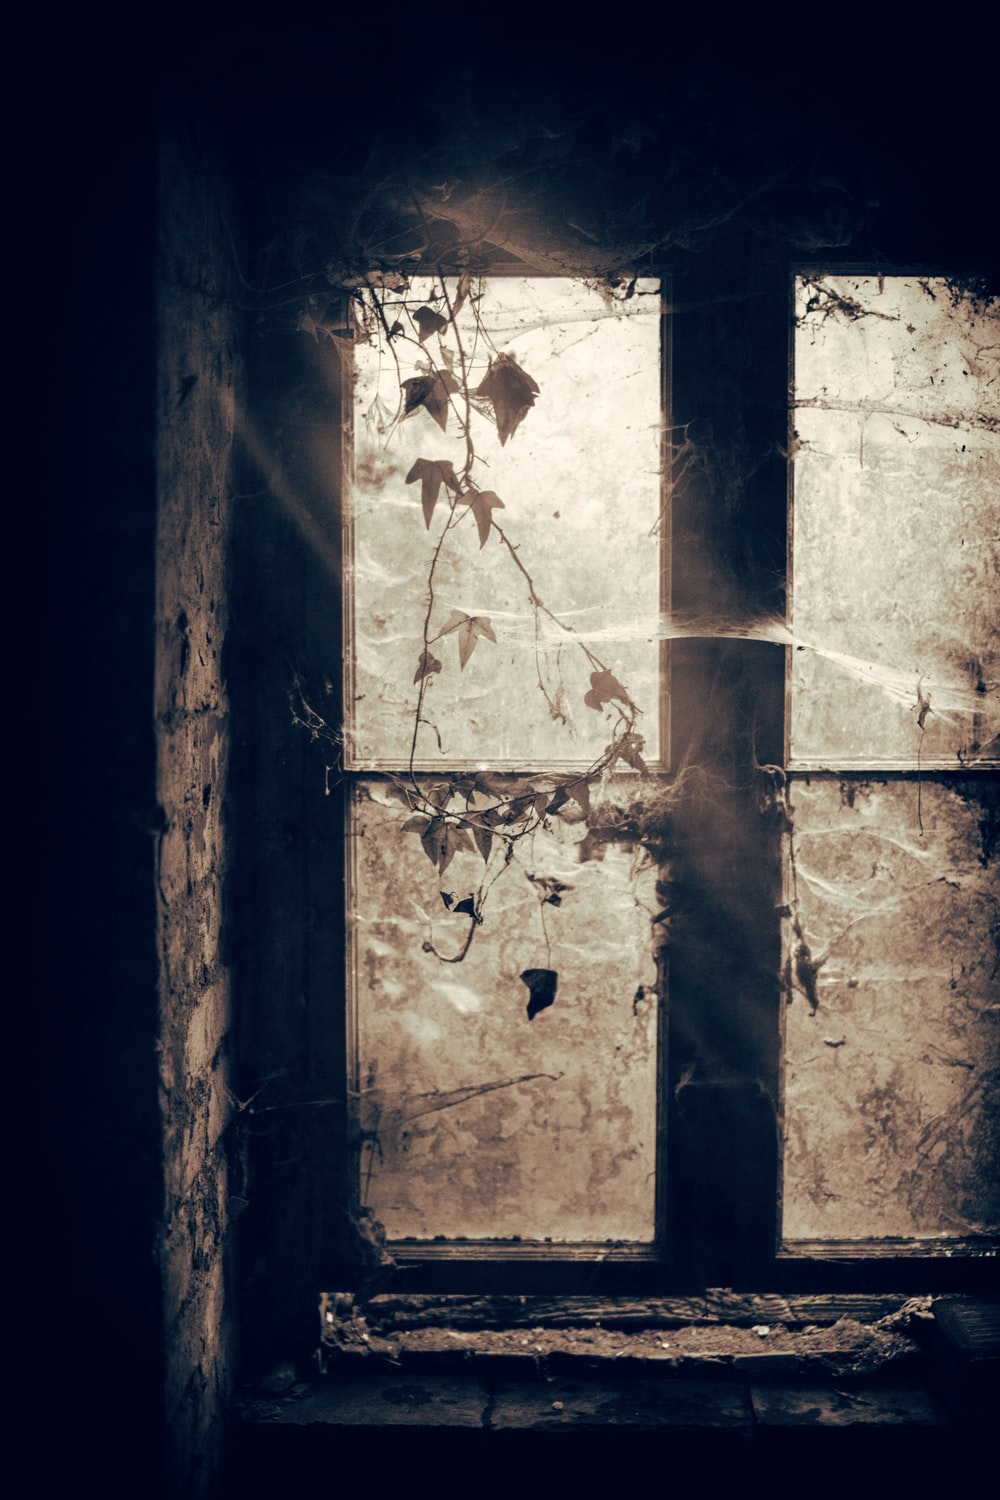 grayscale photo of closed window with spiders webs and plants